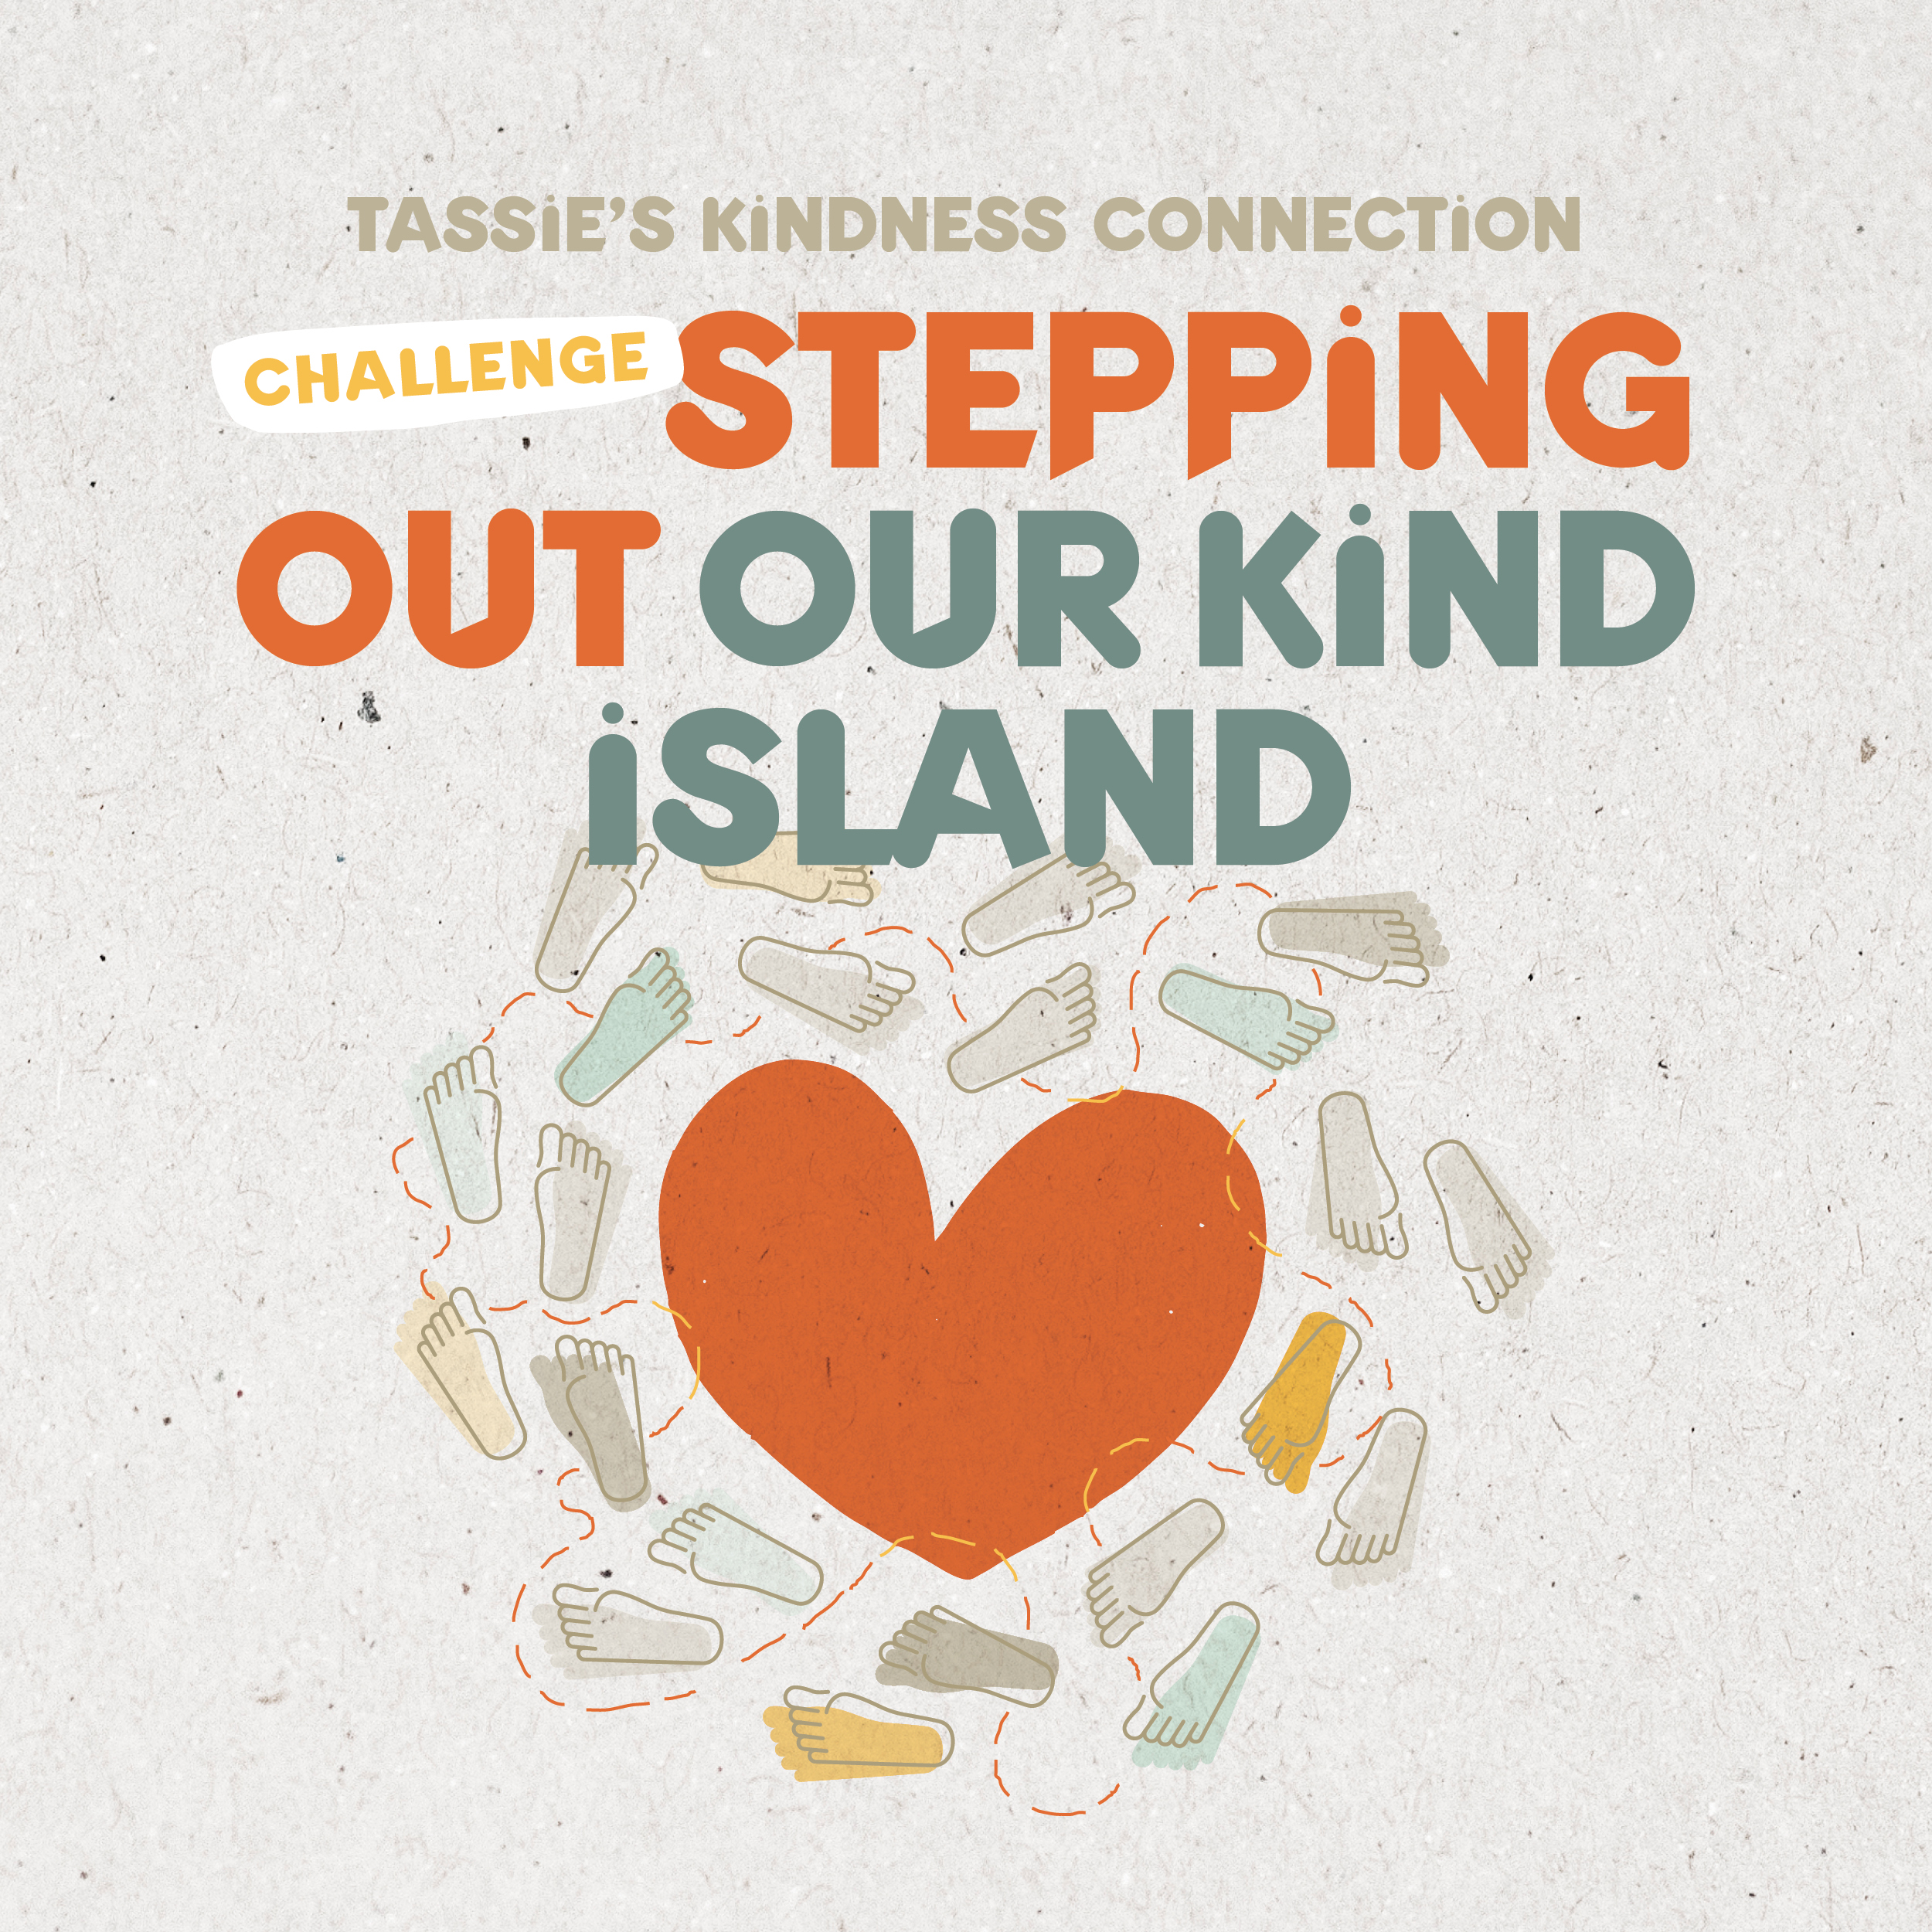 Tasmania surrounded by an ocean of steps as a graphic to illustrate Tassie's Kindness Connectcion's Stepping Out Our Kind Island activity